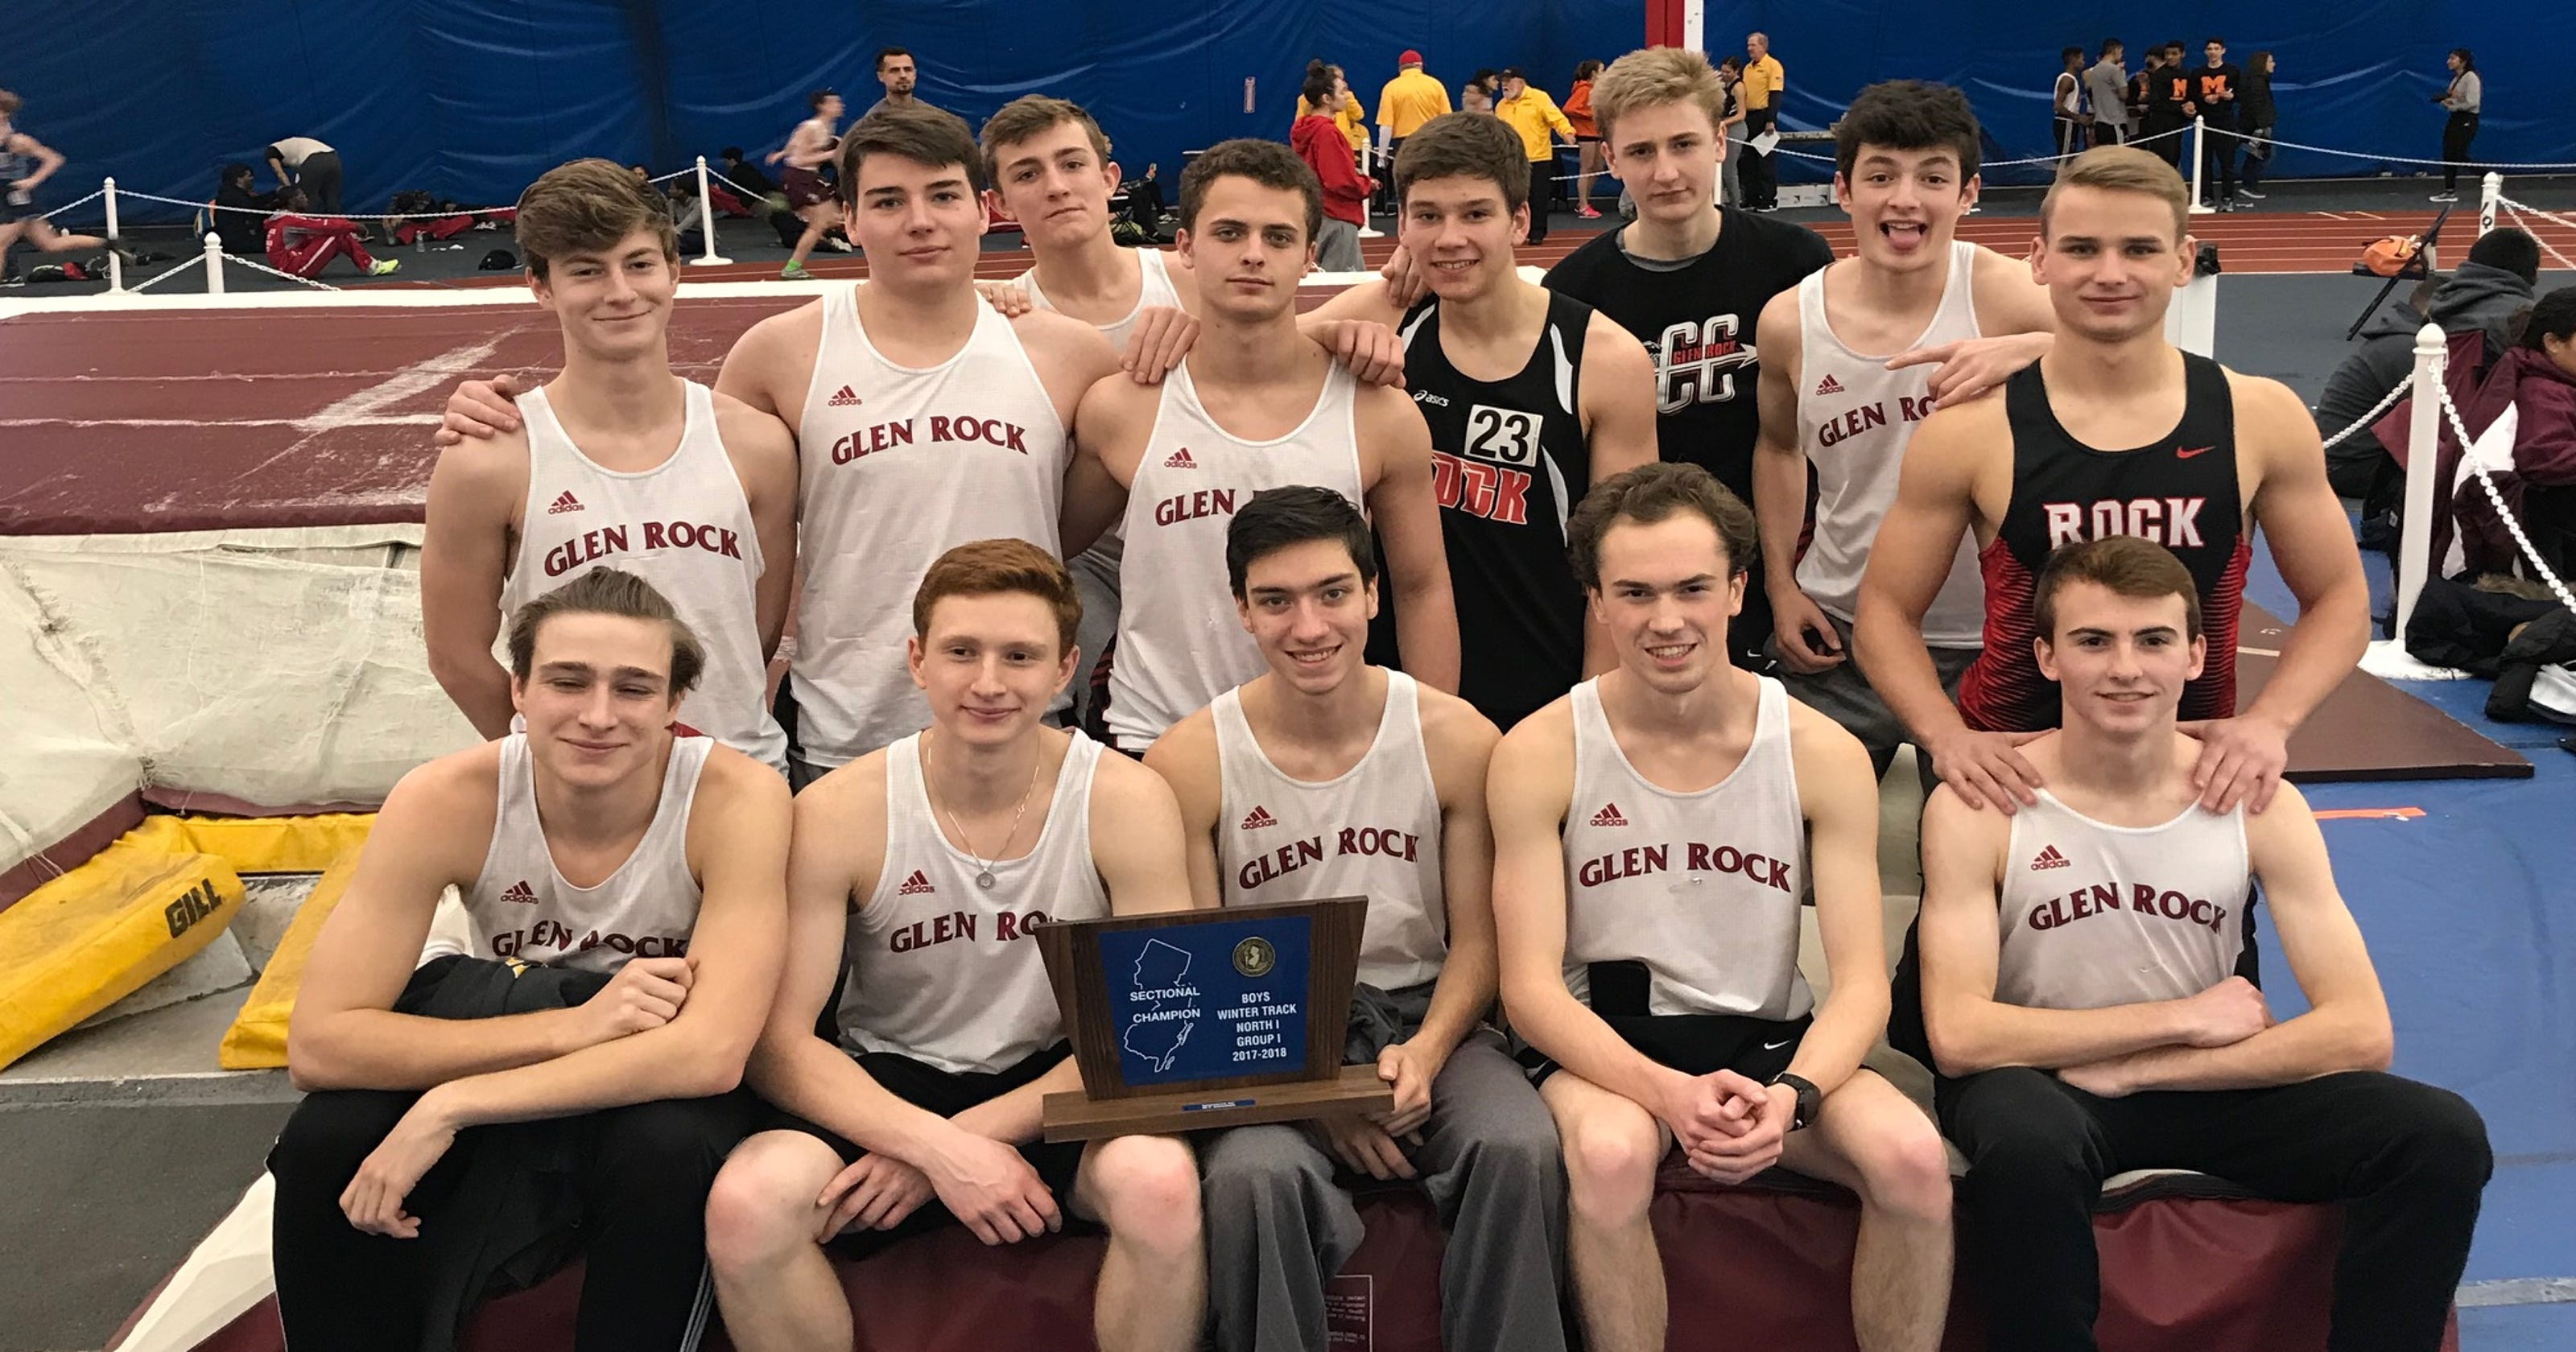 NJ indoor track: Boys team-by-team previews for North Jersey